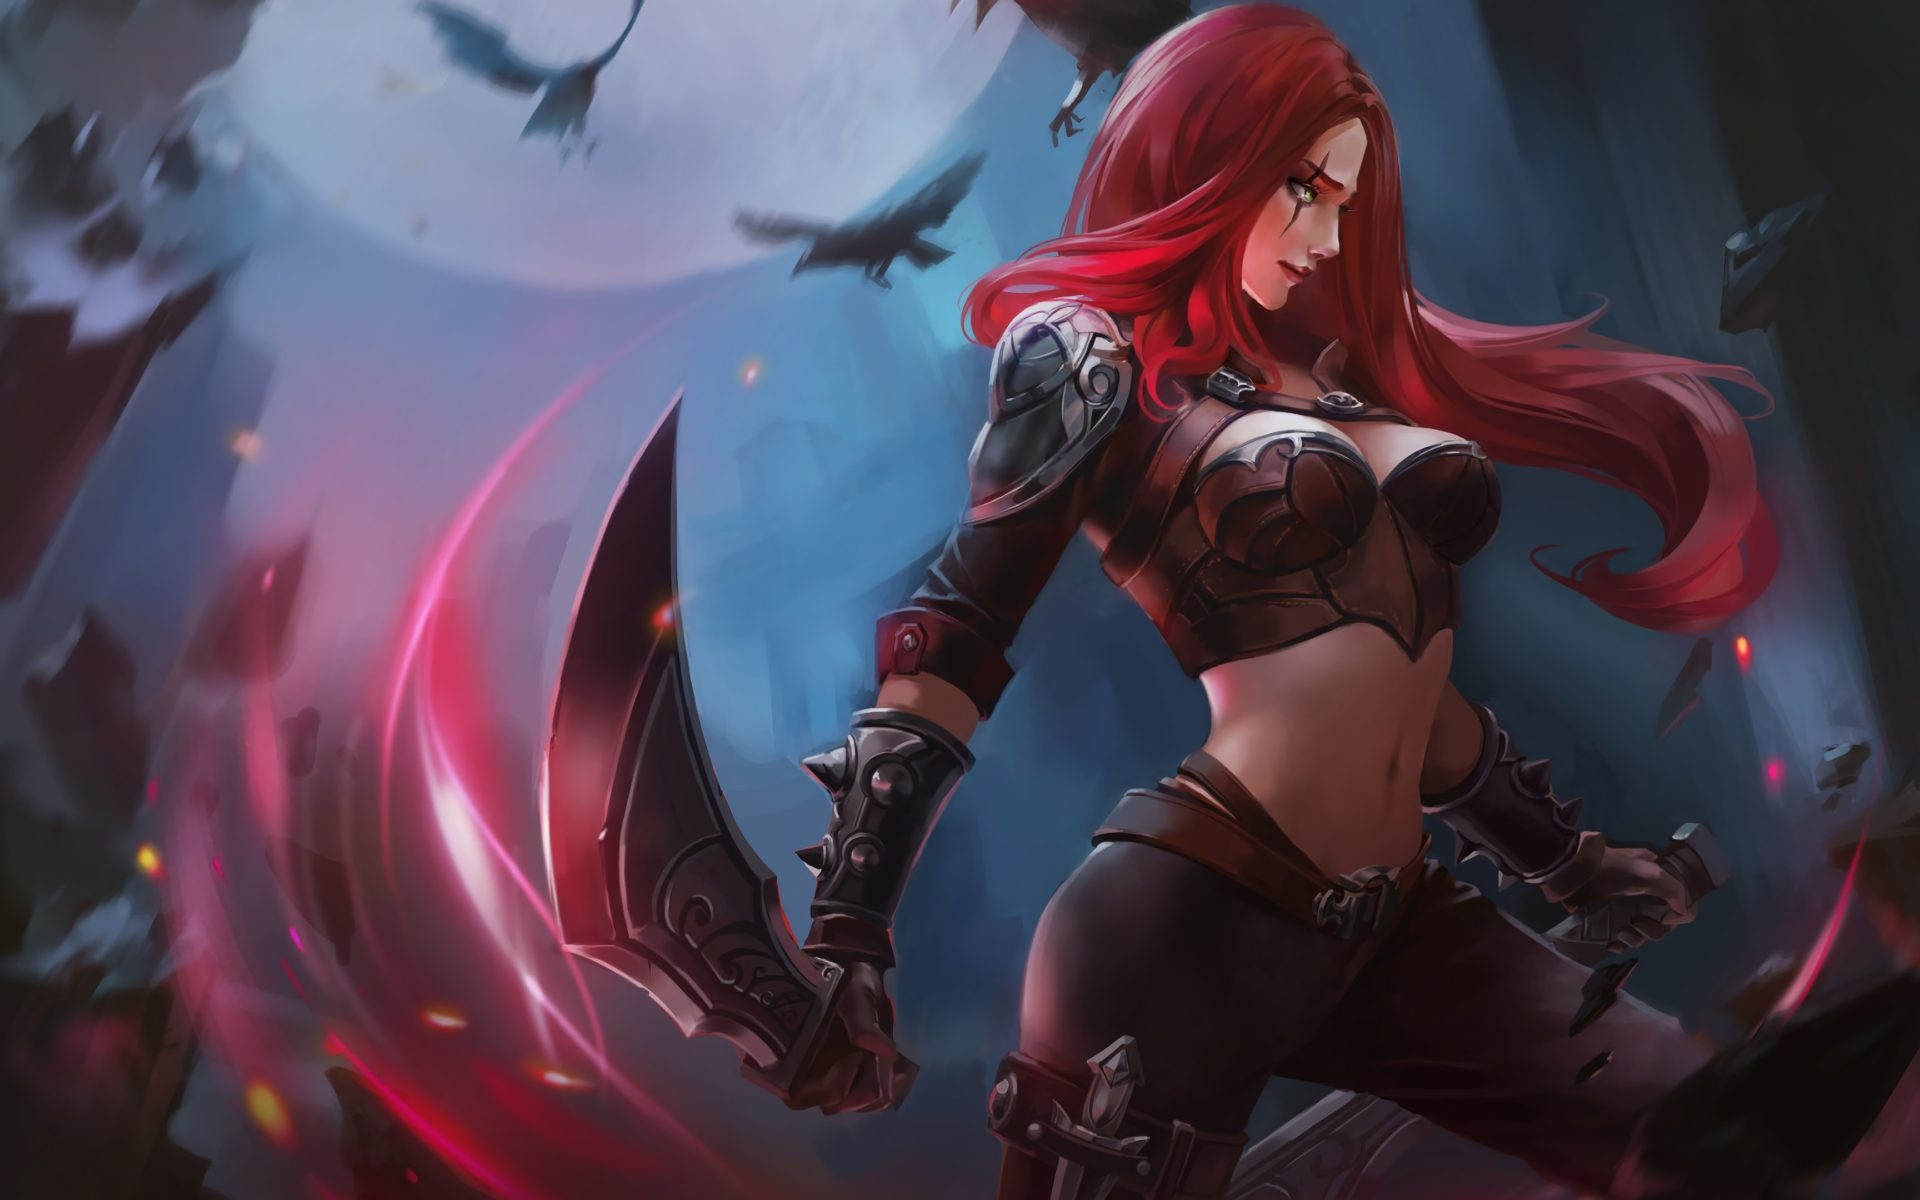 Katarina In League Of Legends Wallpaper Hd Games 4k Wallpapers